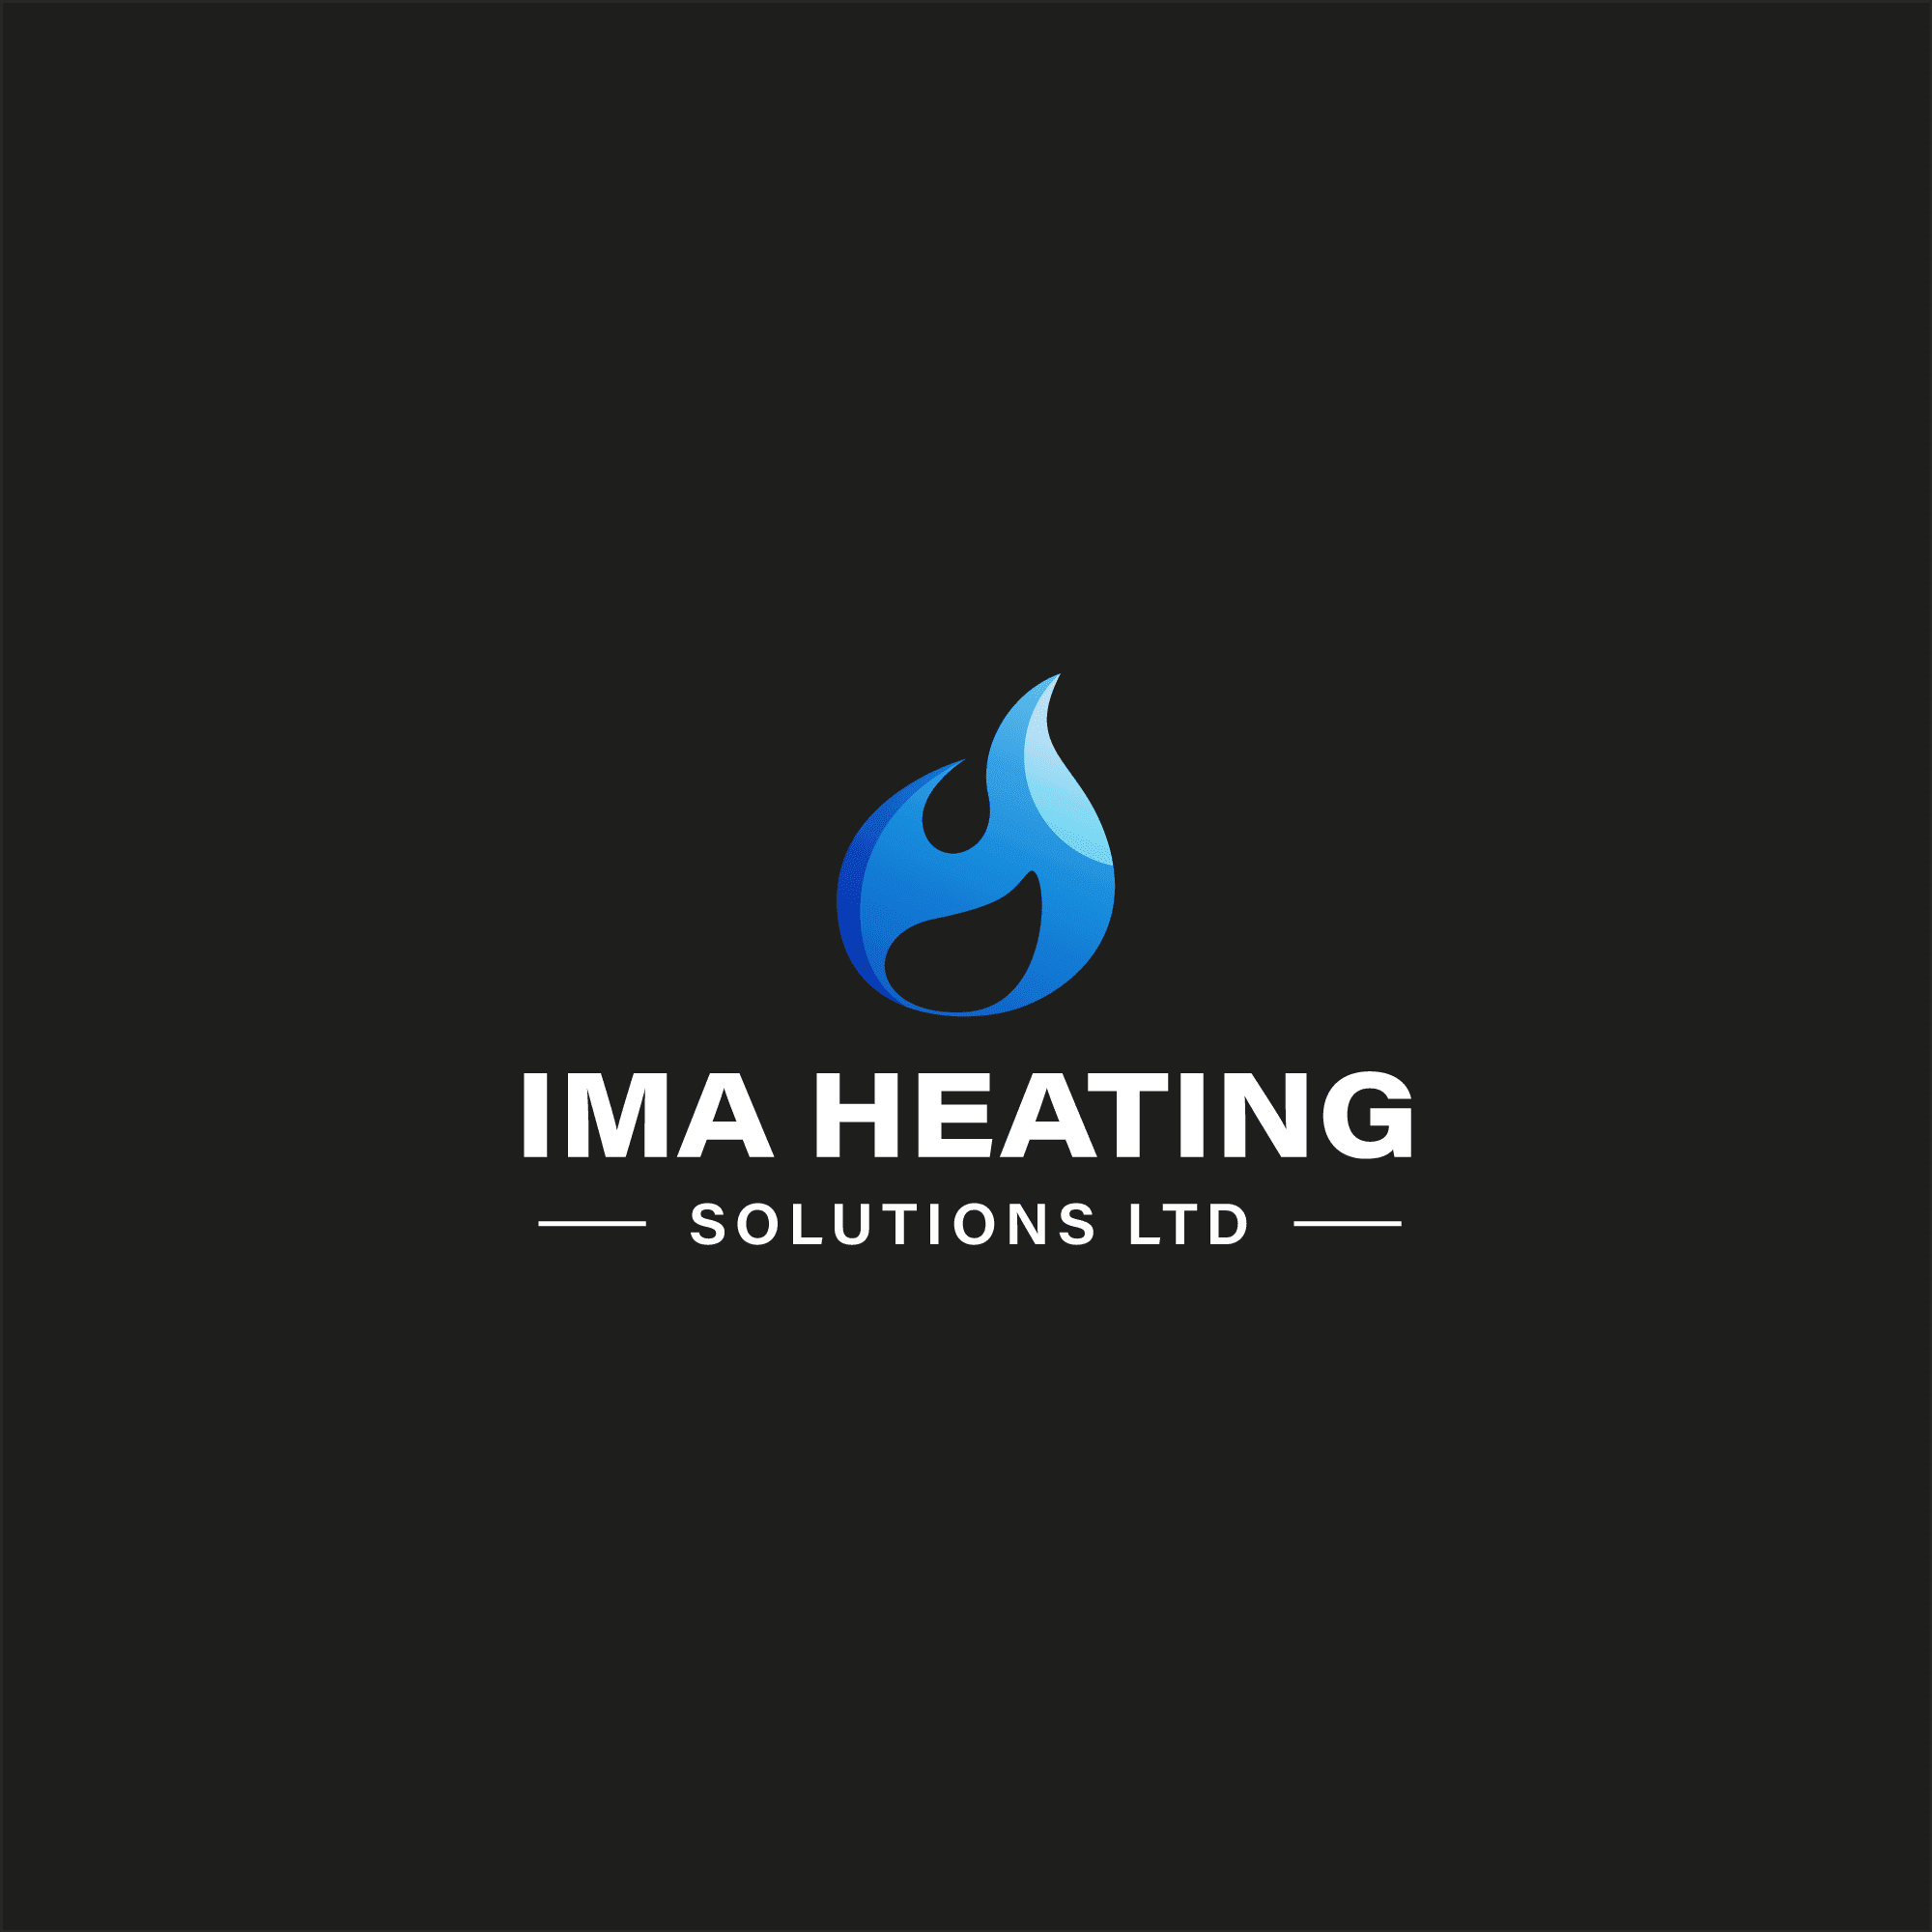 IMA Heating Solutions Ltd - Worcester Park, London KT4 7AE - 07470 870666 | ShowMeLocal.com